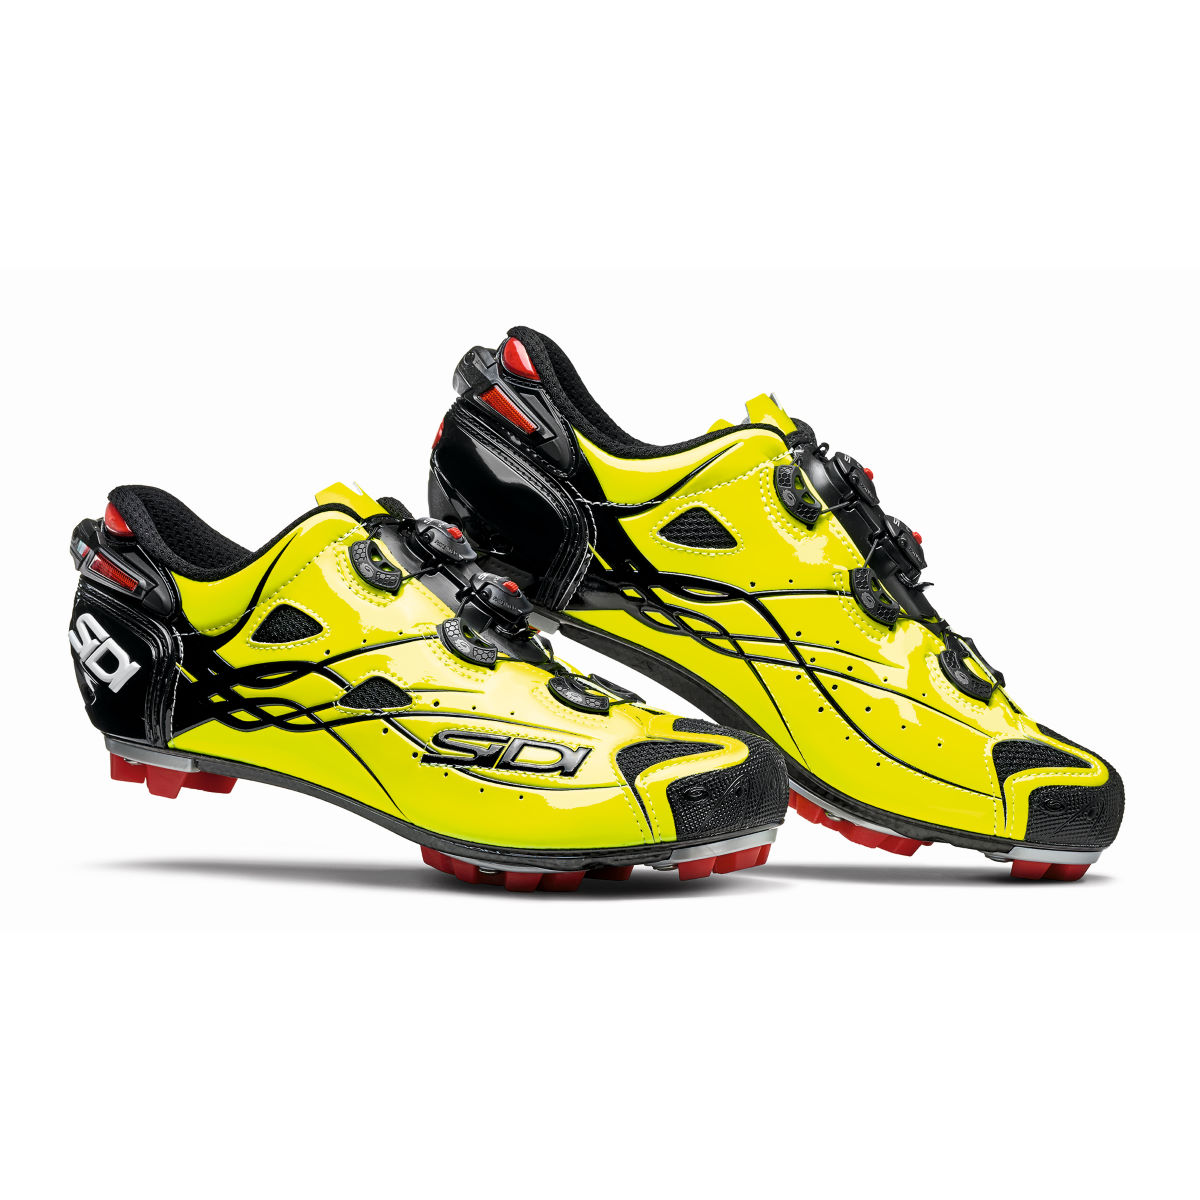 Chaussures VTT Sidi Tiger Carbon - 40,5 Yellow/Yellow